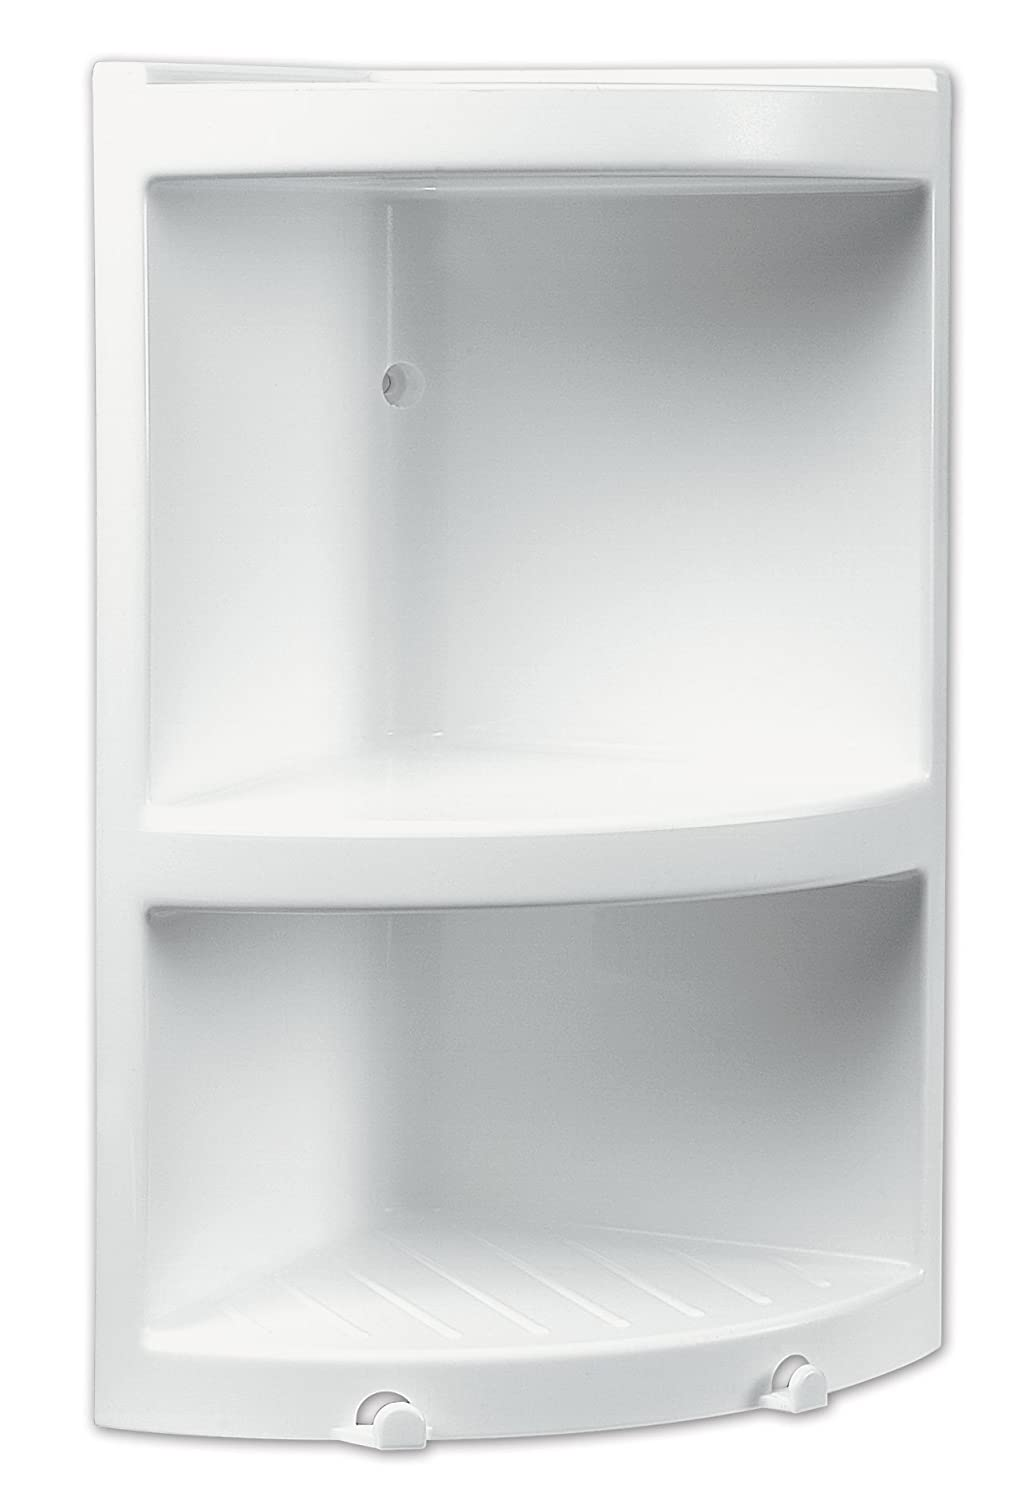 Eliplast Corner Shelf At 3 Levels Eliplast_722/1 0